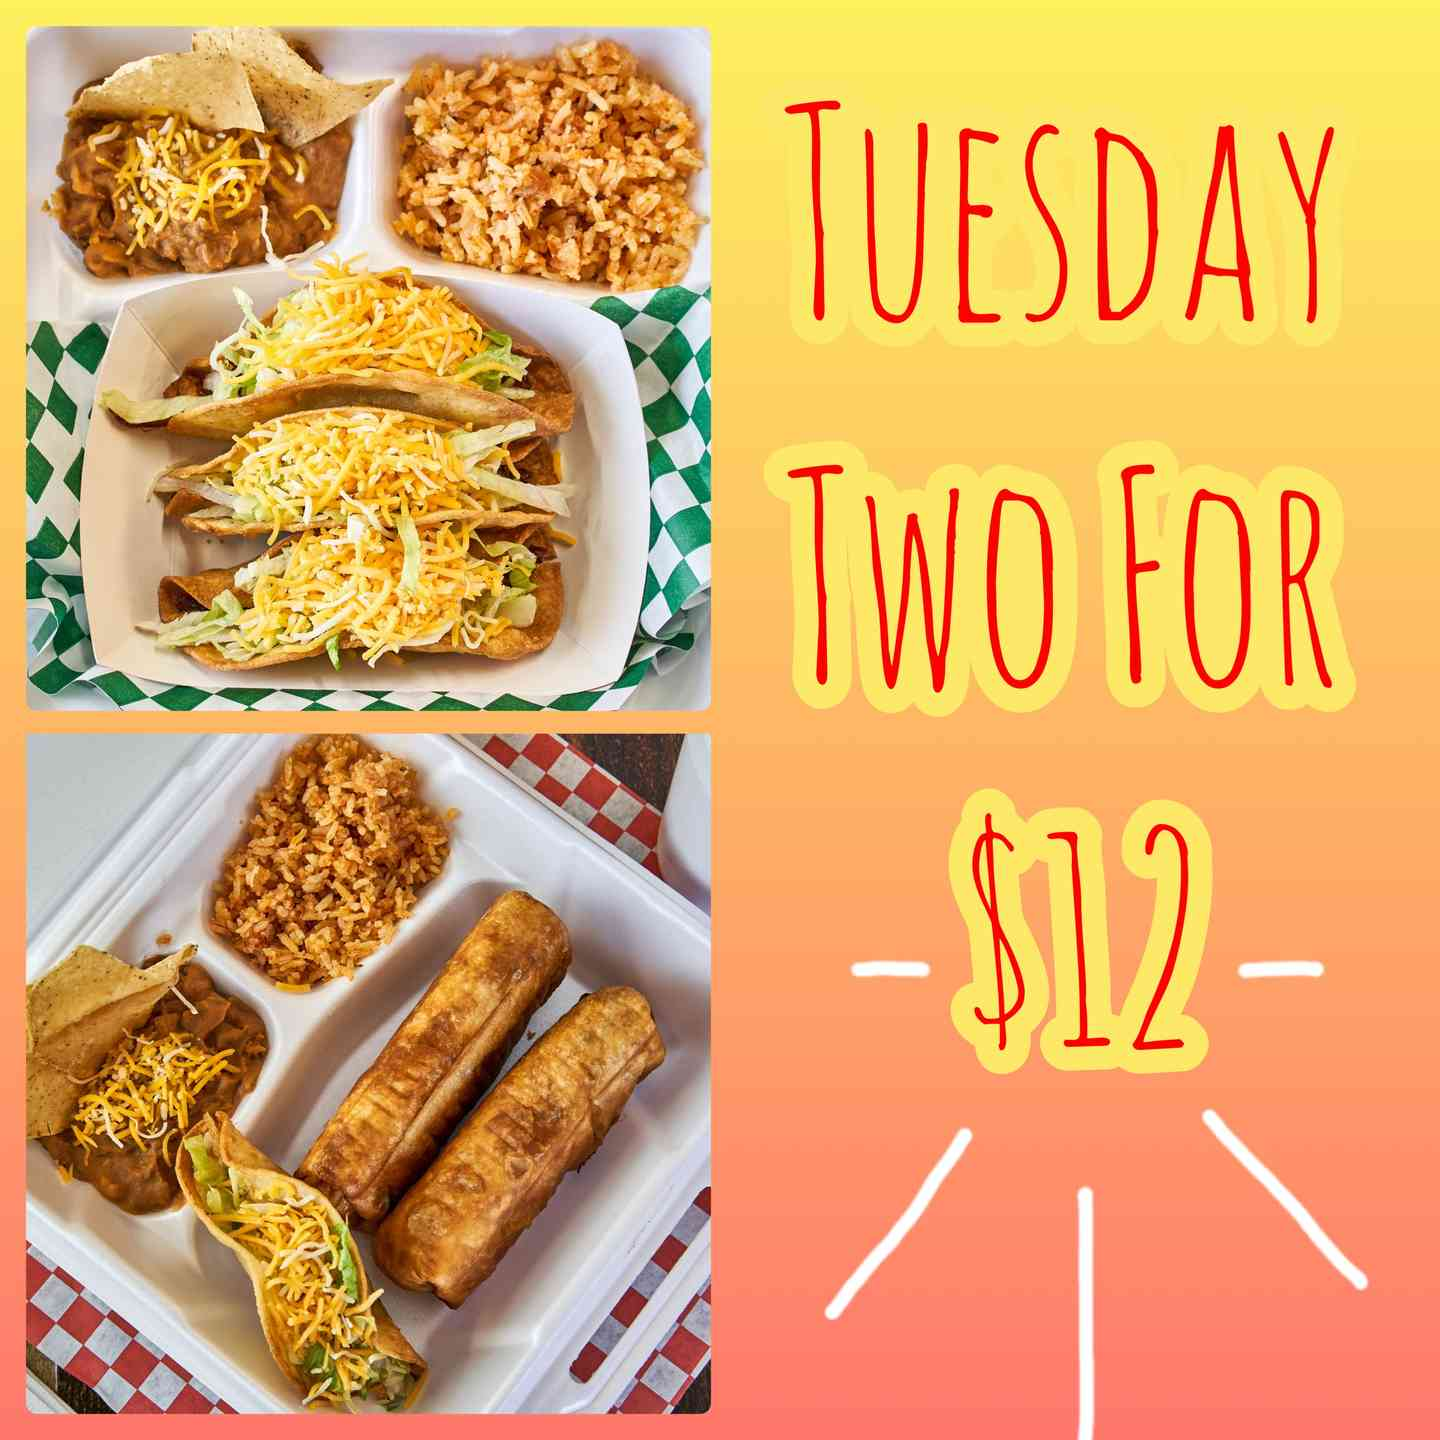 2 Dinners for $12